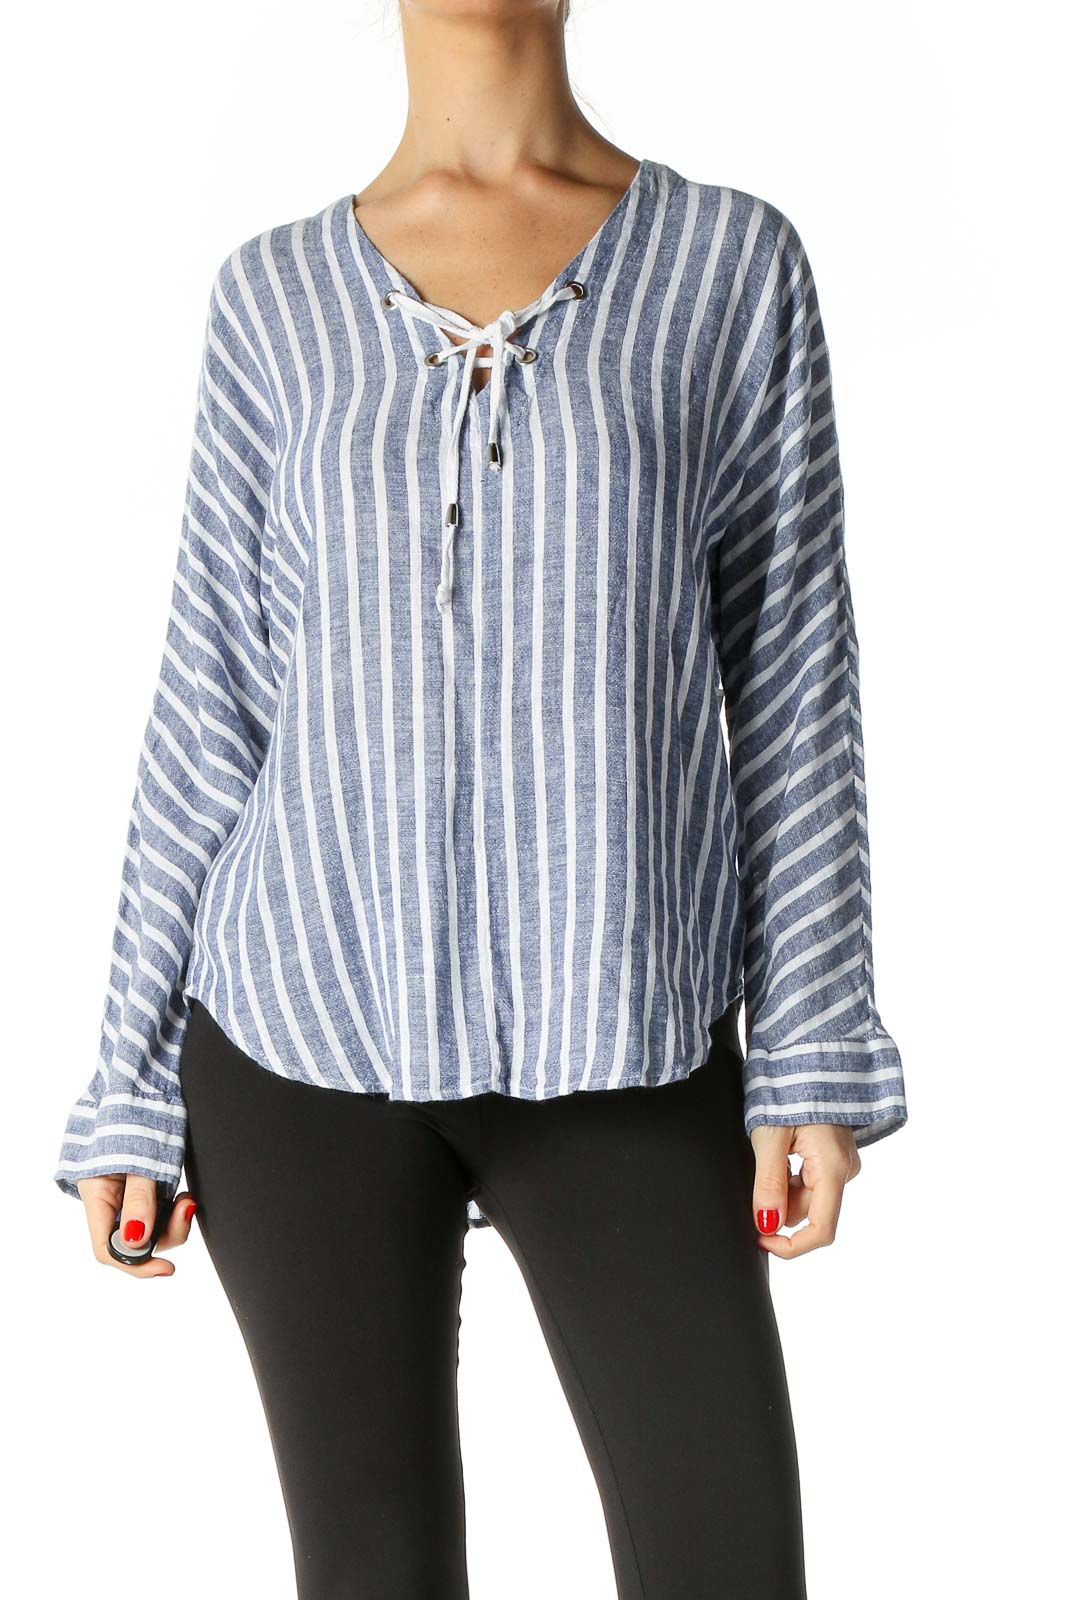 Gray Striped Casual Blouse Front